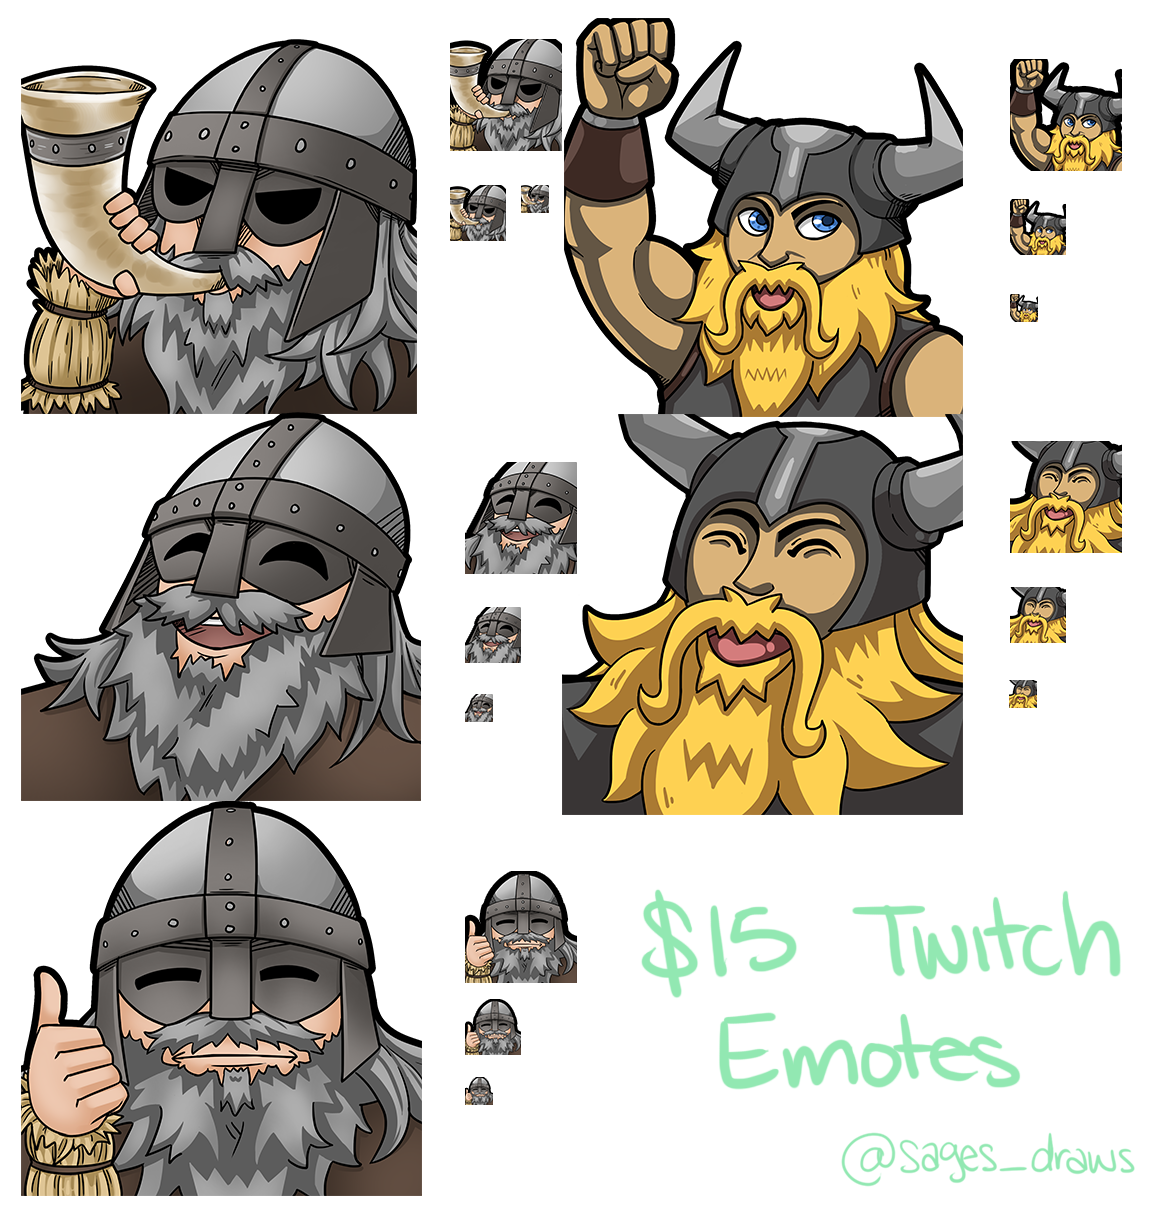 TWITCH EMOTES NOT SHOWING - Everything you Need to Know About How To